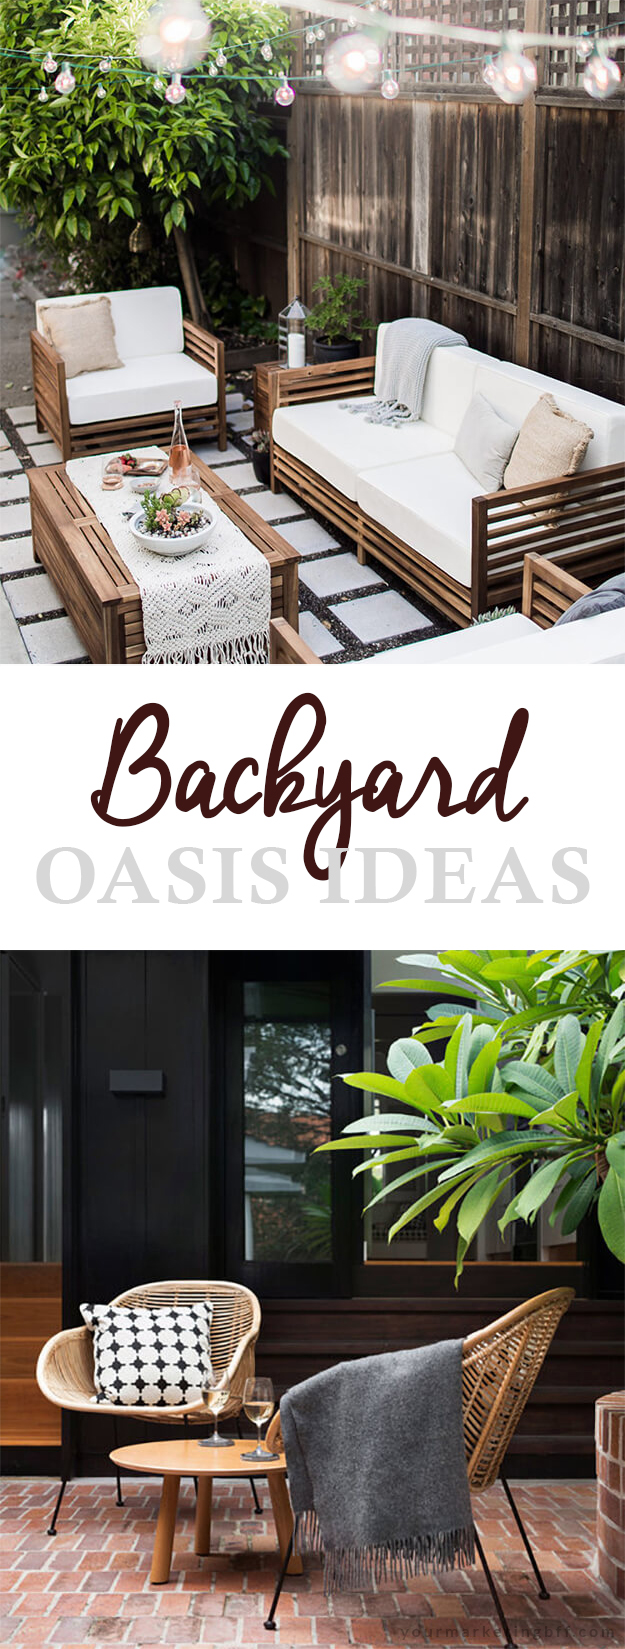 Ten Beautiful Backyard Oasis Ideas